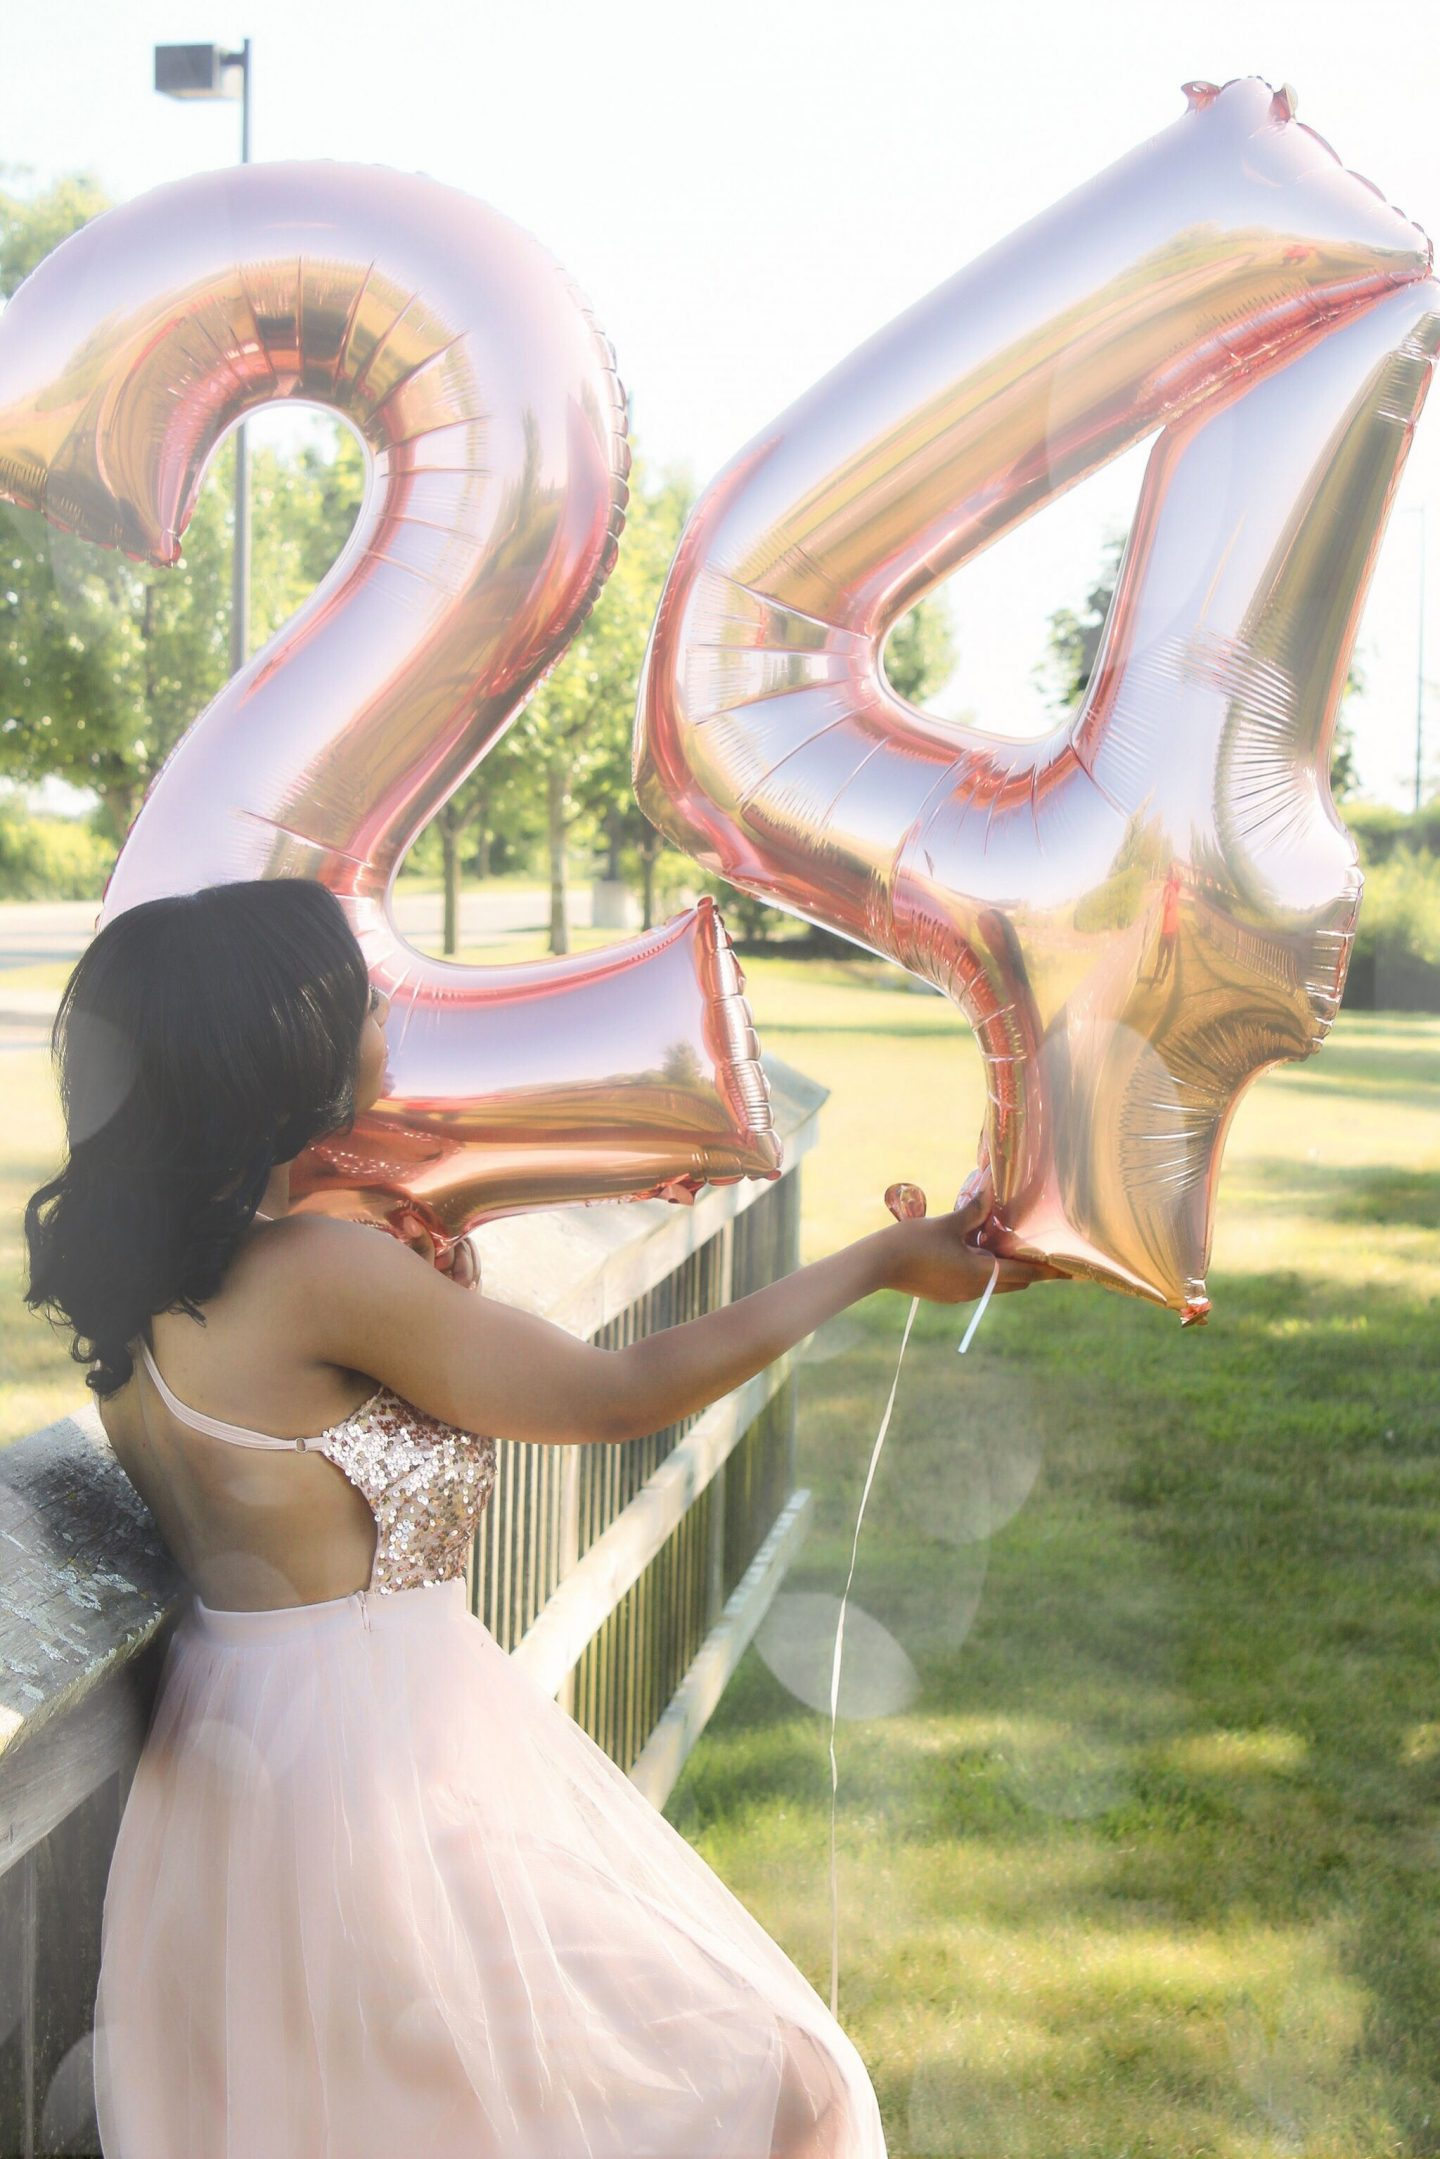 Chapter 24!